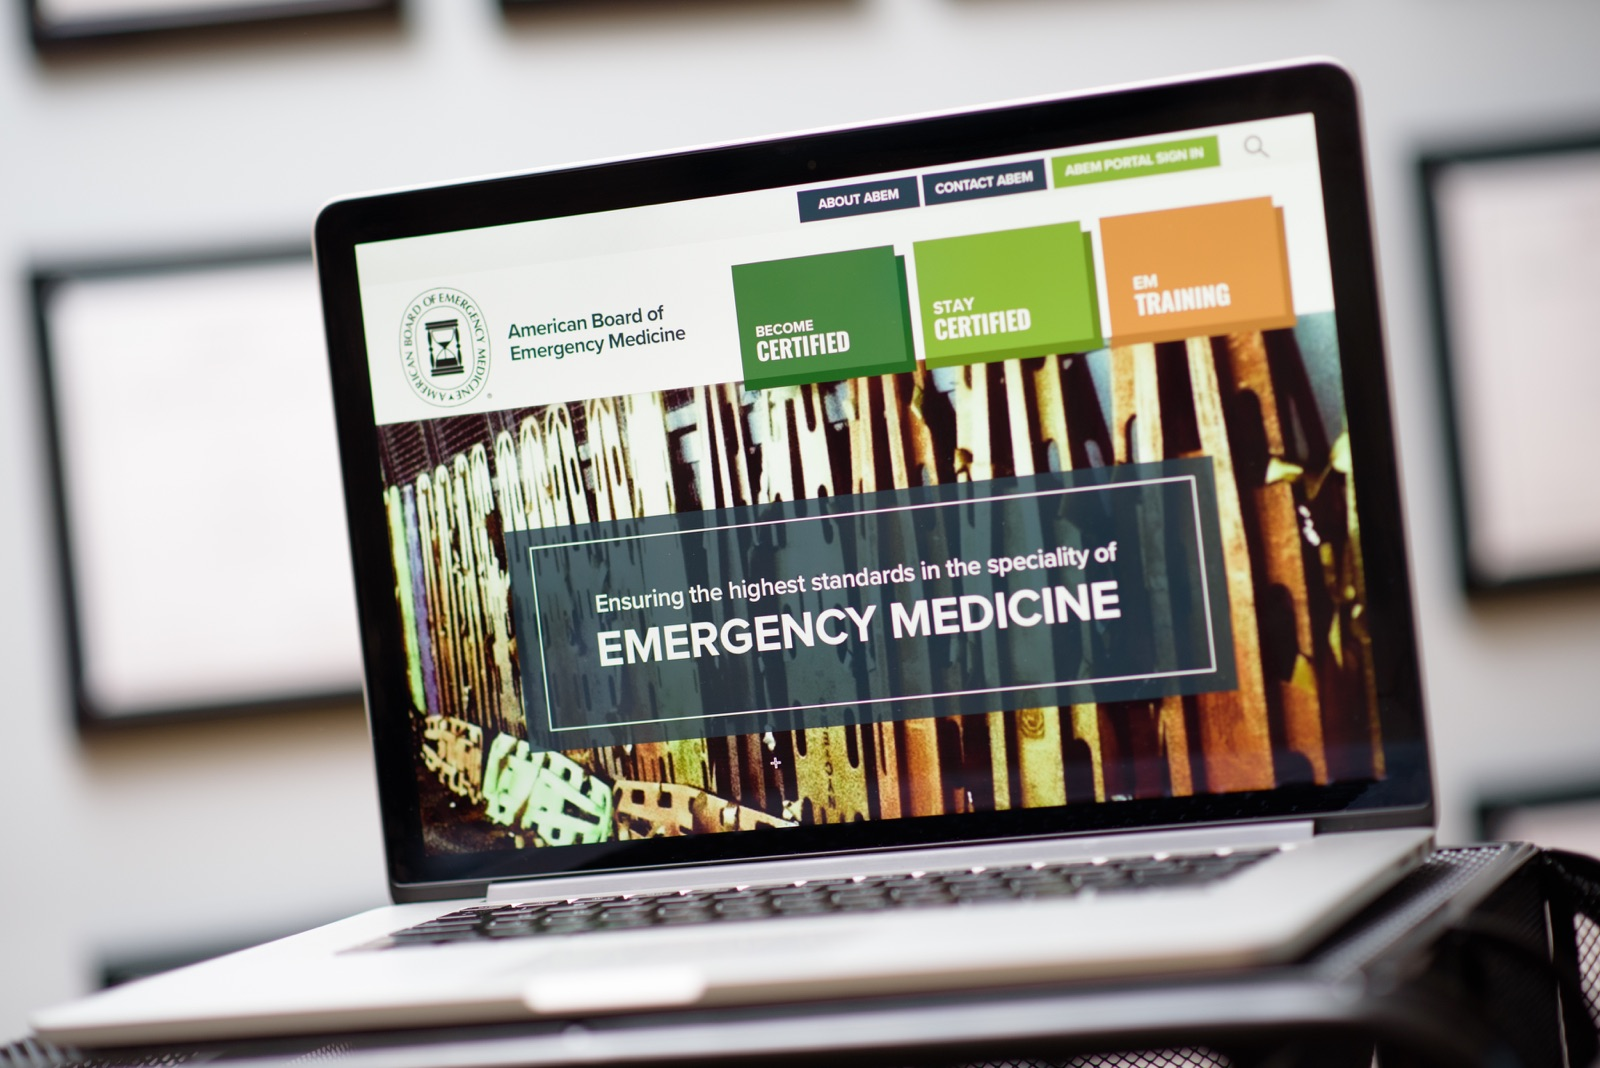 The ABEM website on a laptop